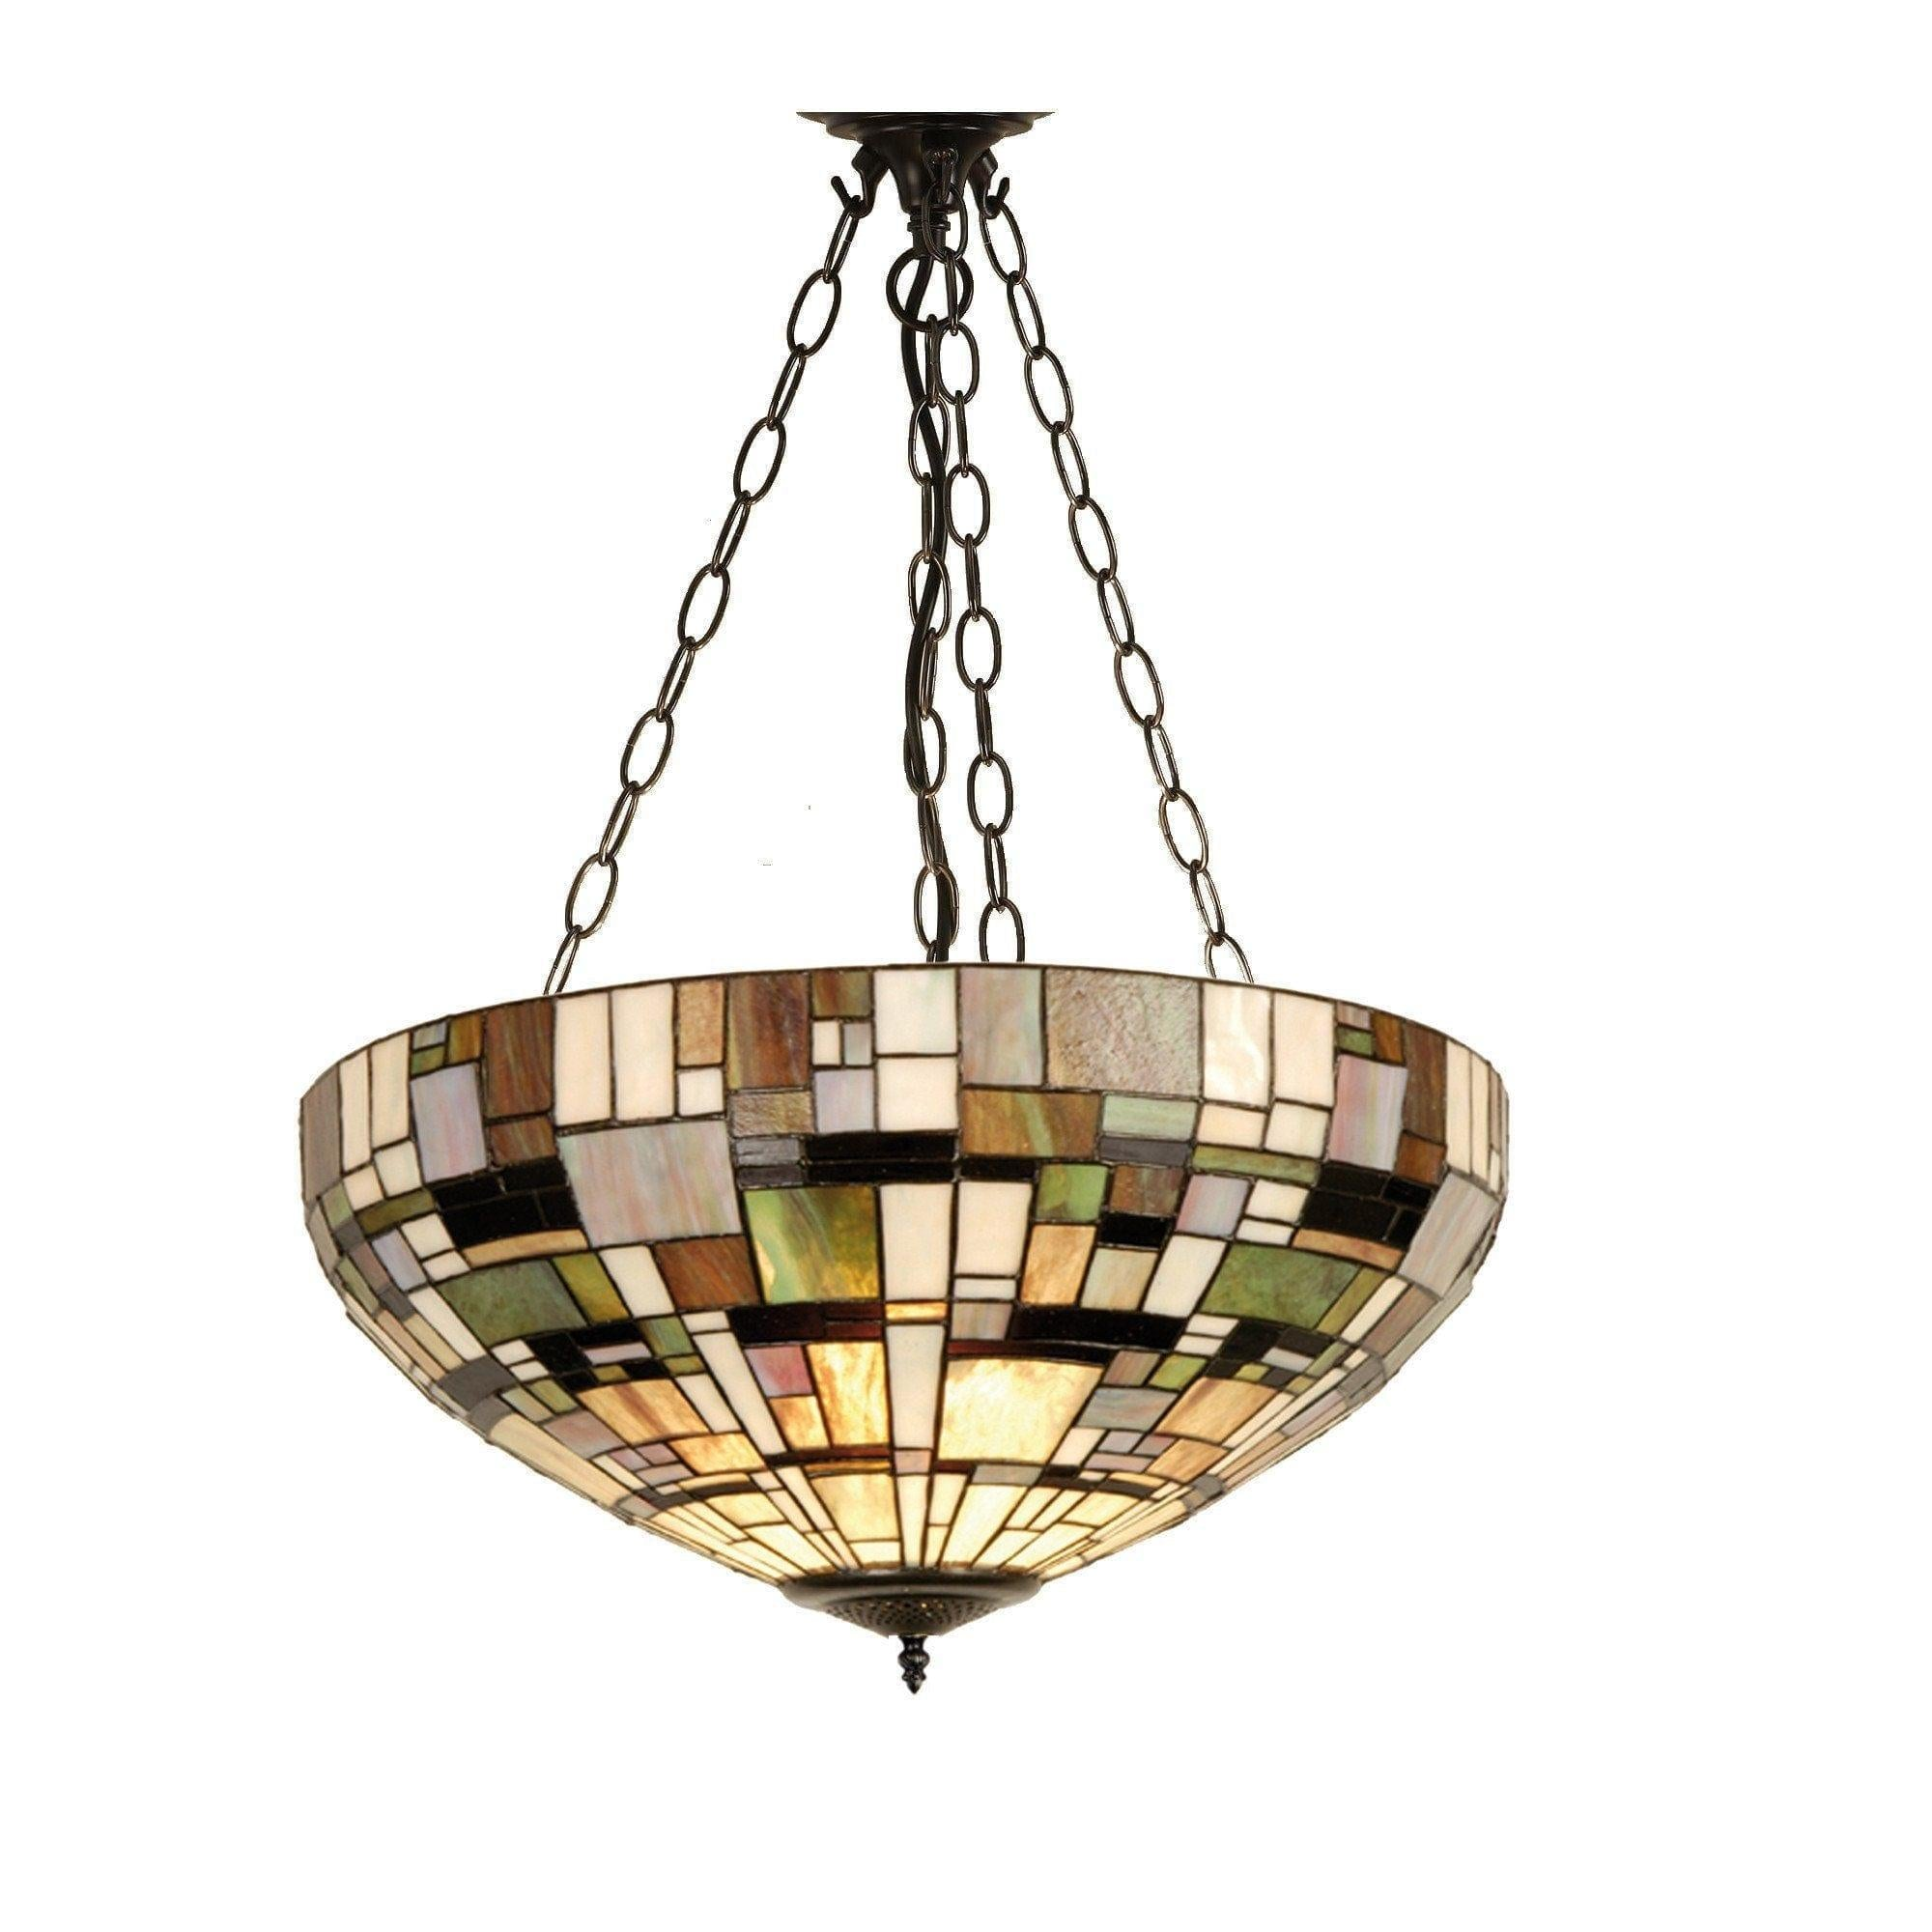 Inverted Ceiling Pendant Lights - Falling Water Inverted Pendant Light (adjustable Chain)